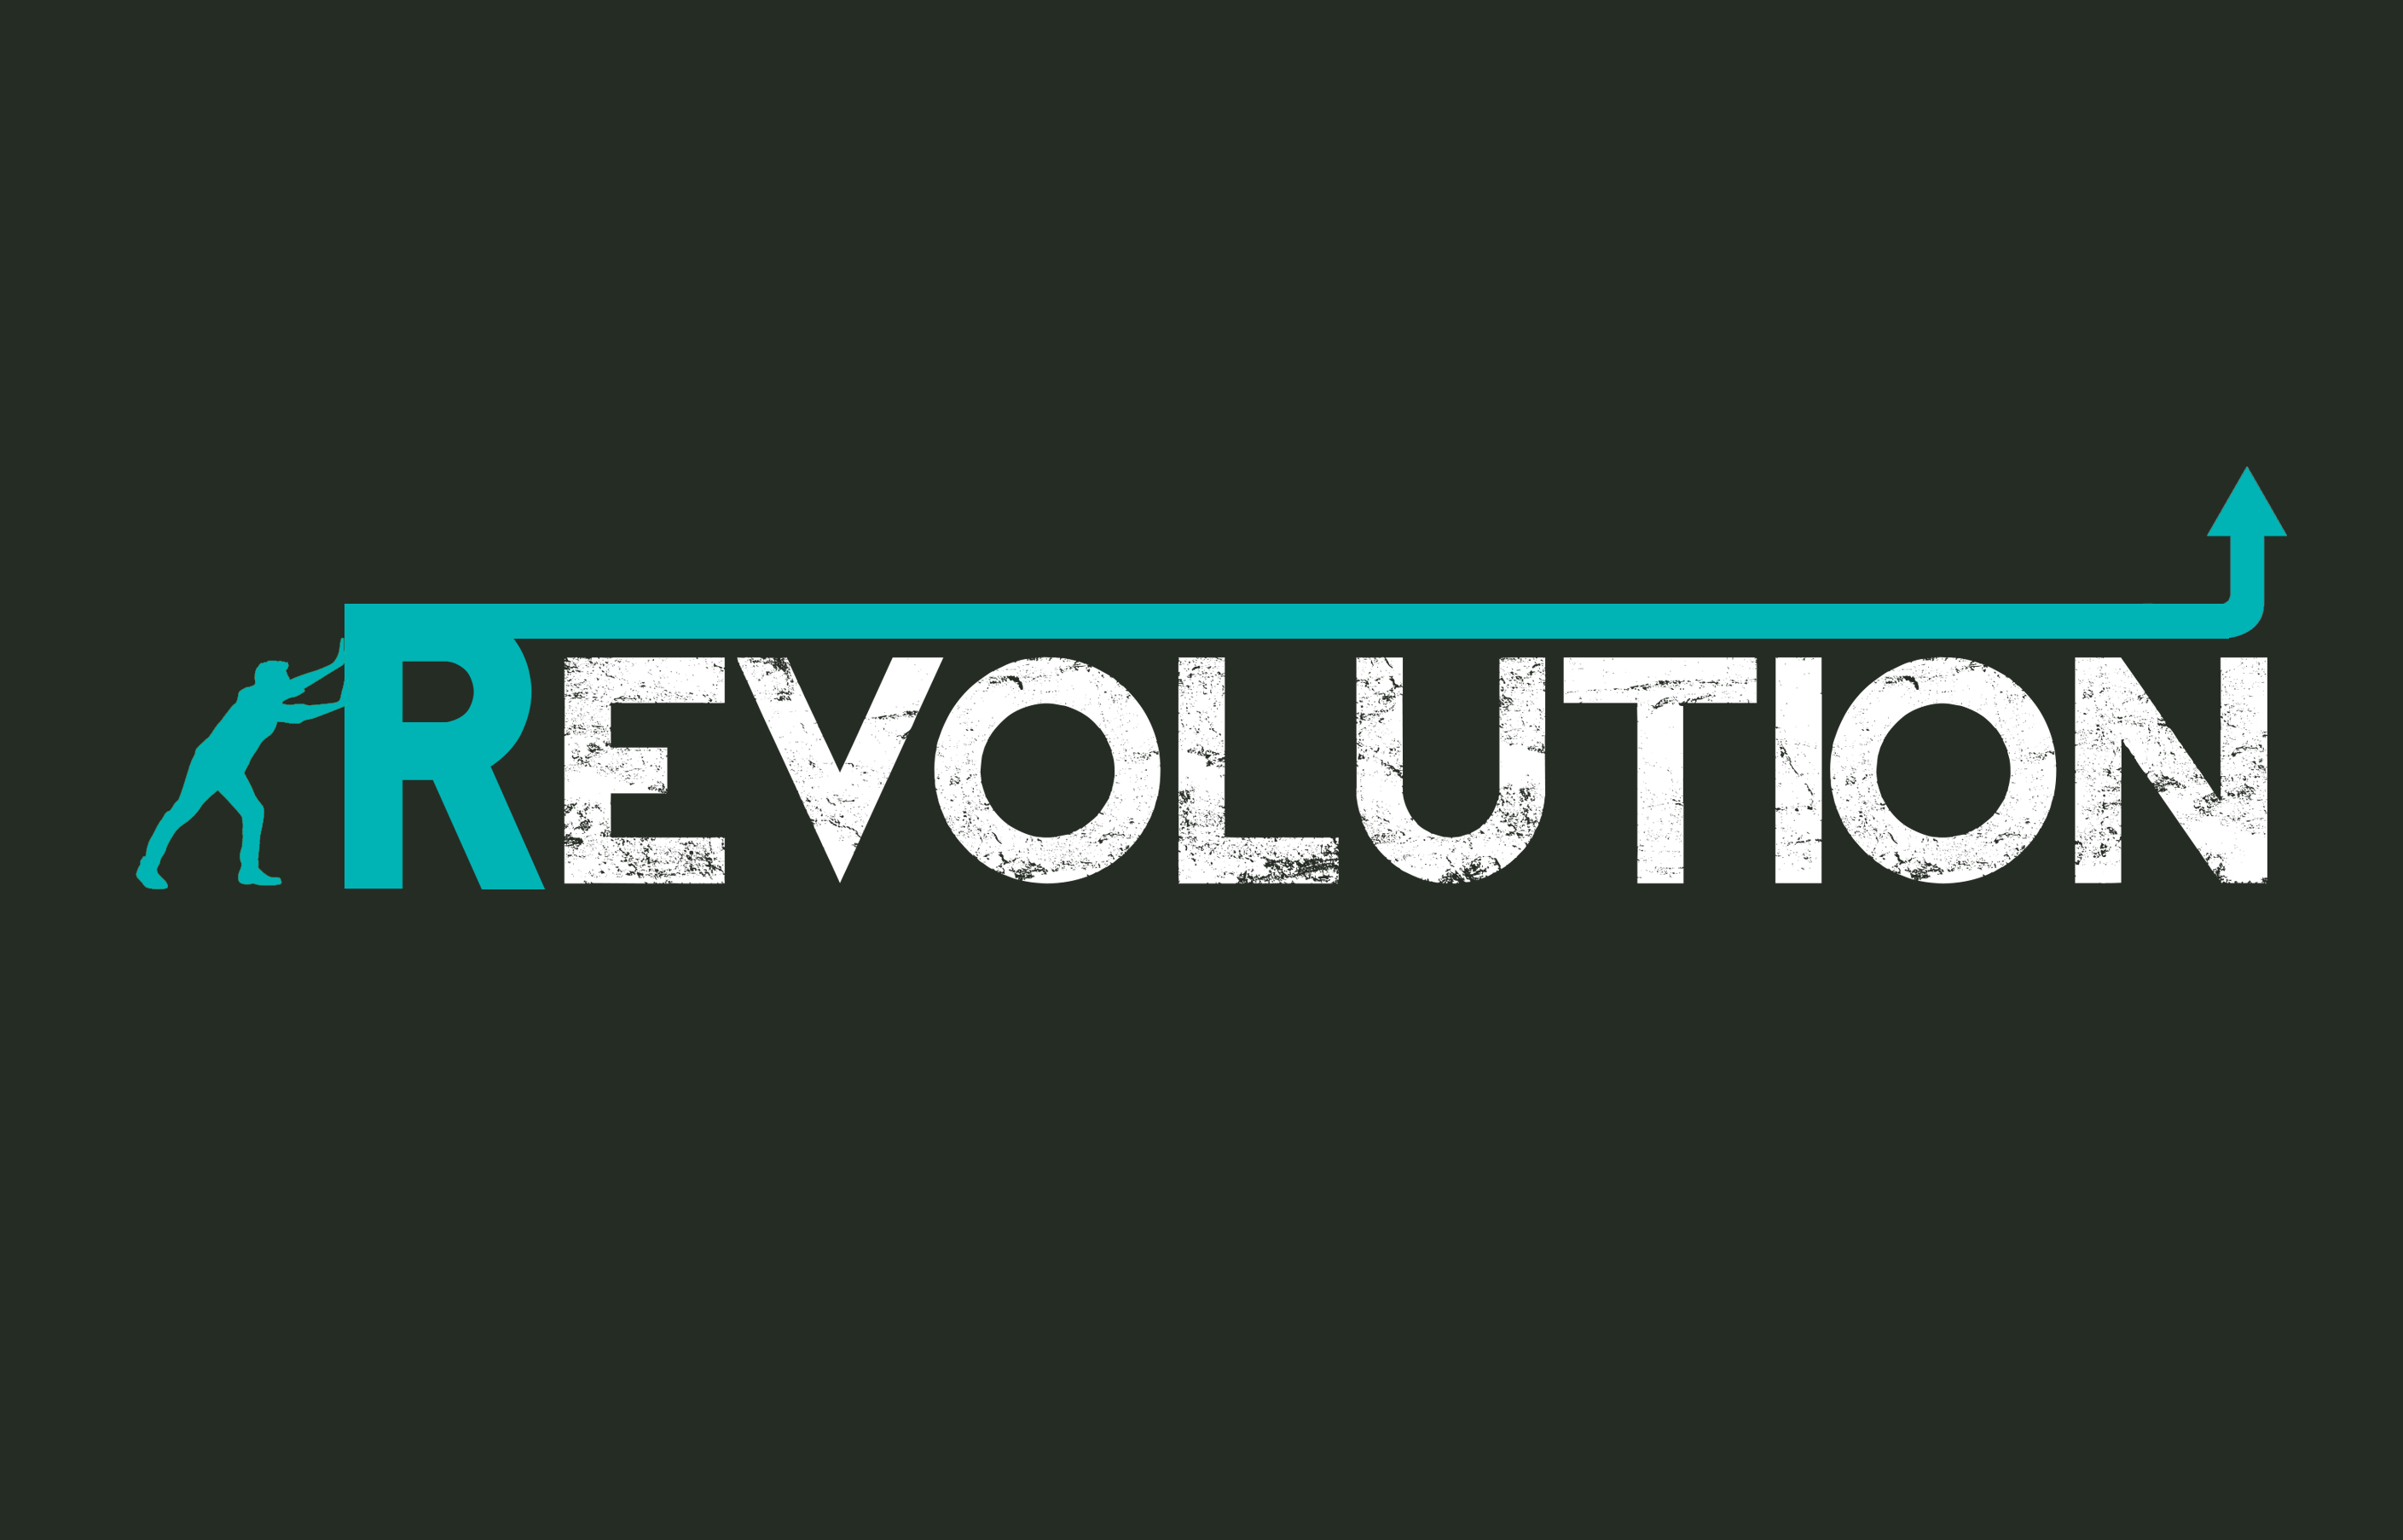 revolution versus evolution essay What is the difference between evolution and revolution evolution refers to a slow and gradual change revolution refers to a sudden and dramatic change.